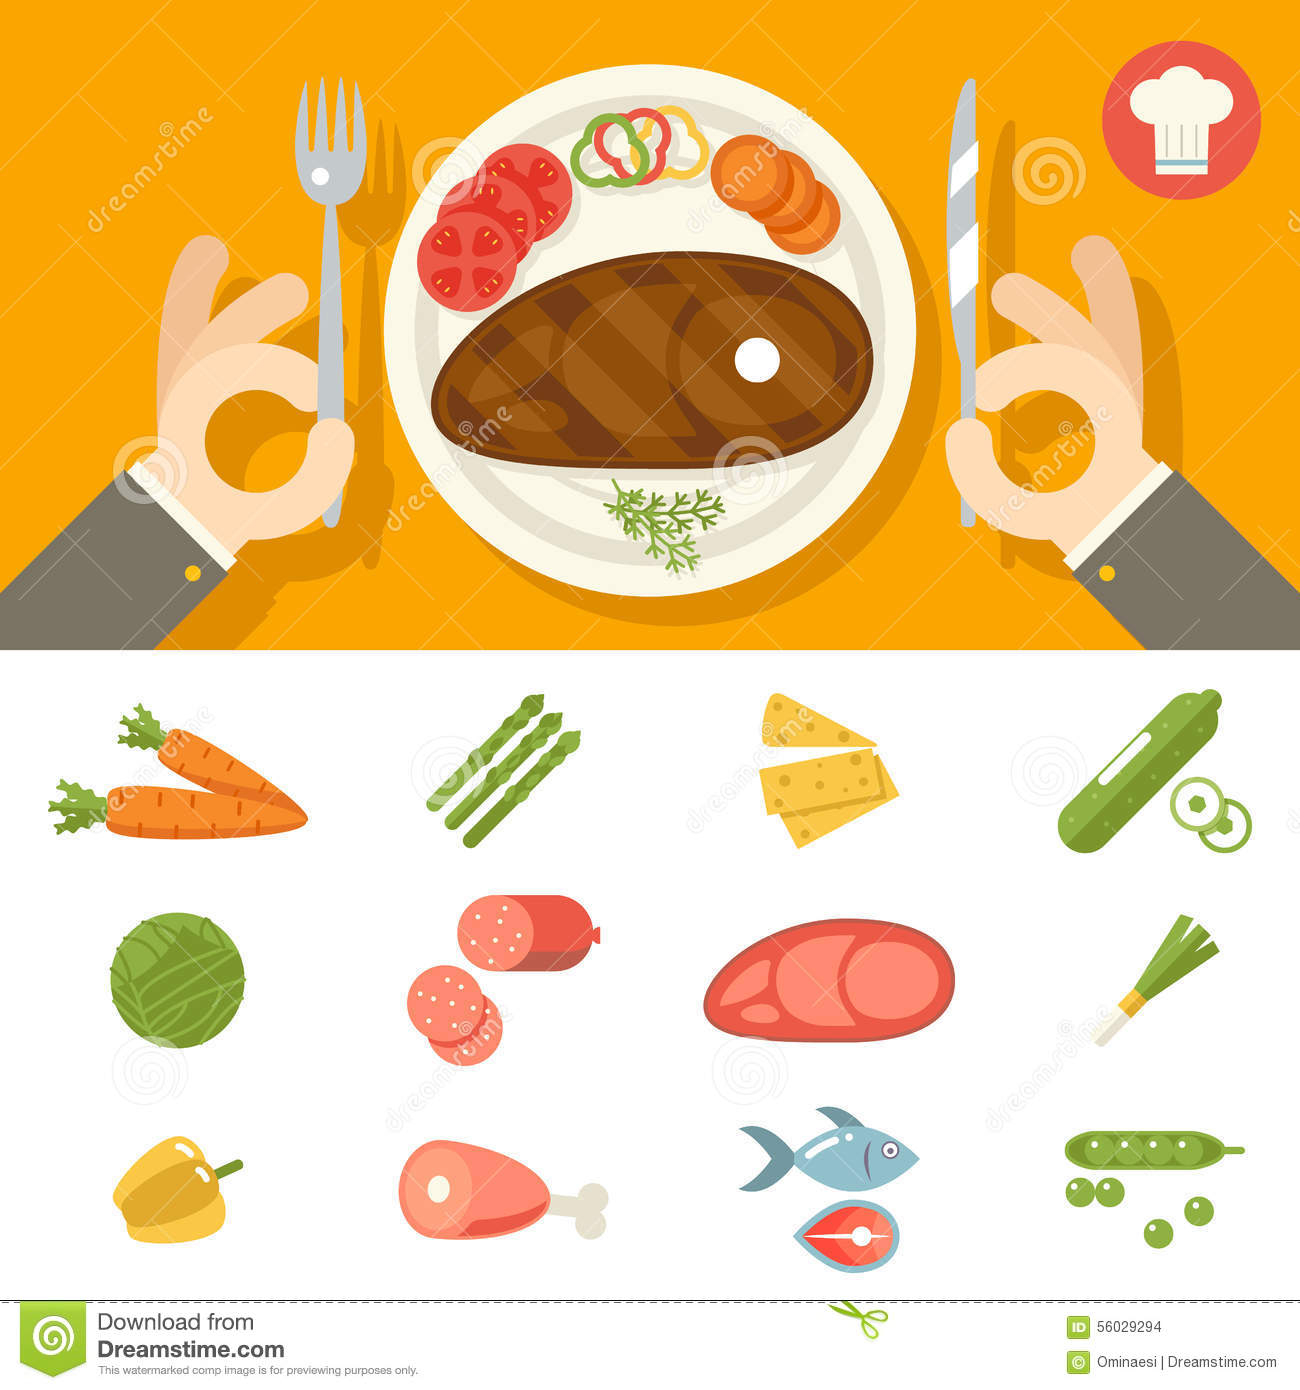 hands cutlery plate food icon set restaurant stock vector farm tractor clip art free farm tractor clipart free